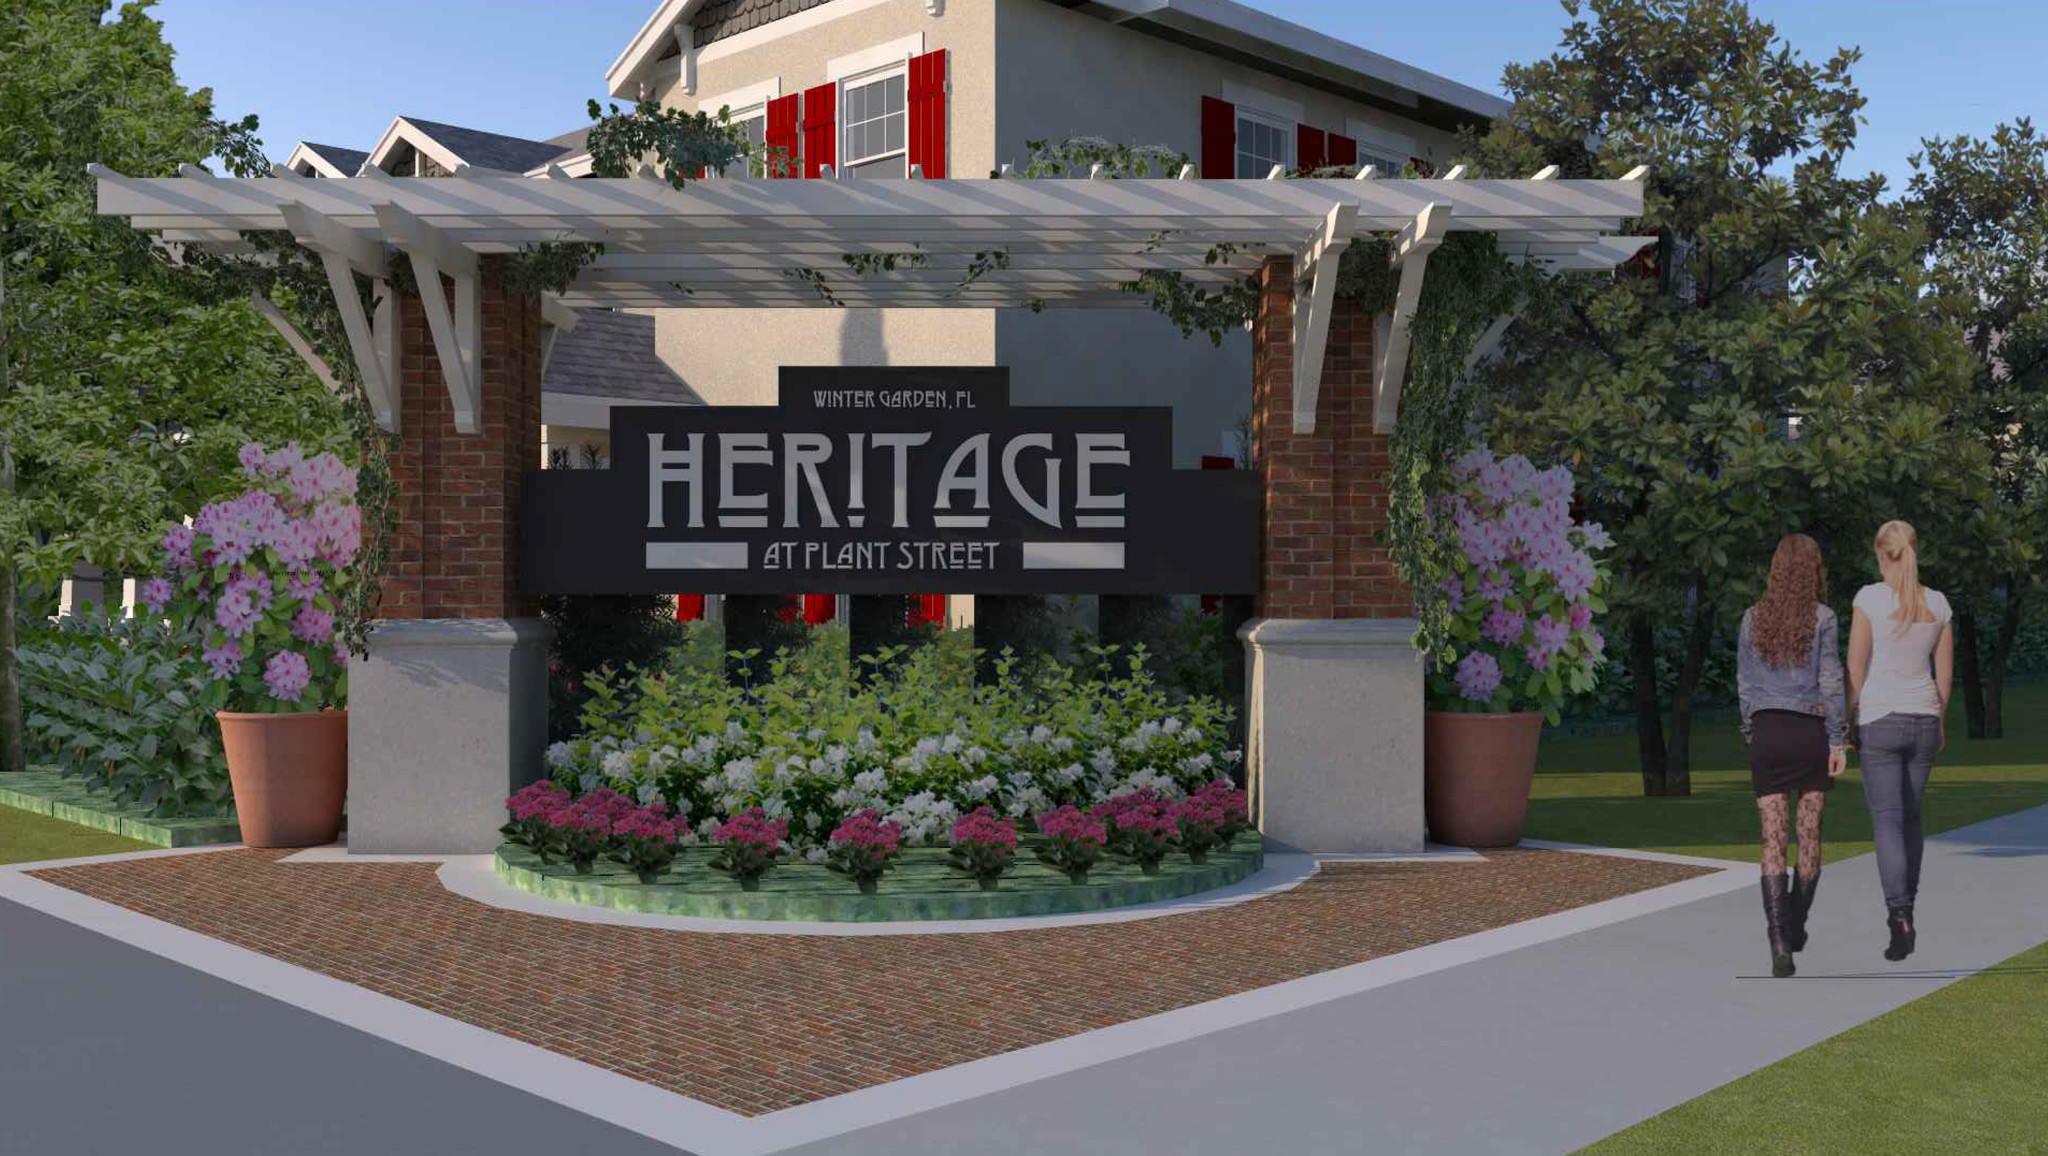 Homes, Townhomes Slated For Winter Garden Historic Area   Orlando Sentinel